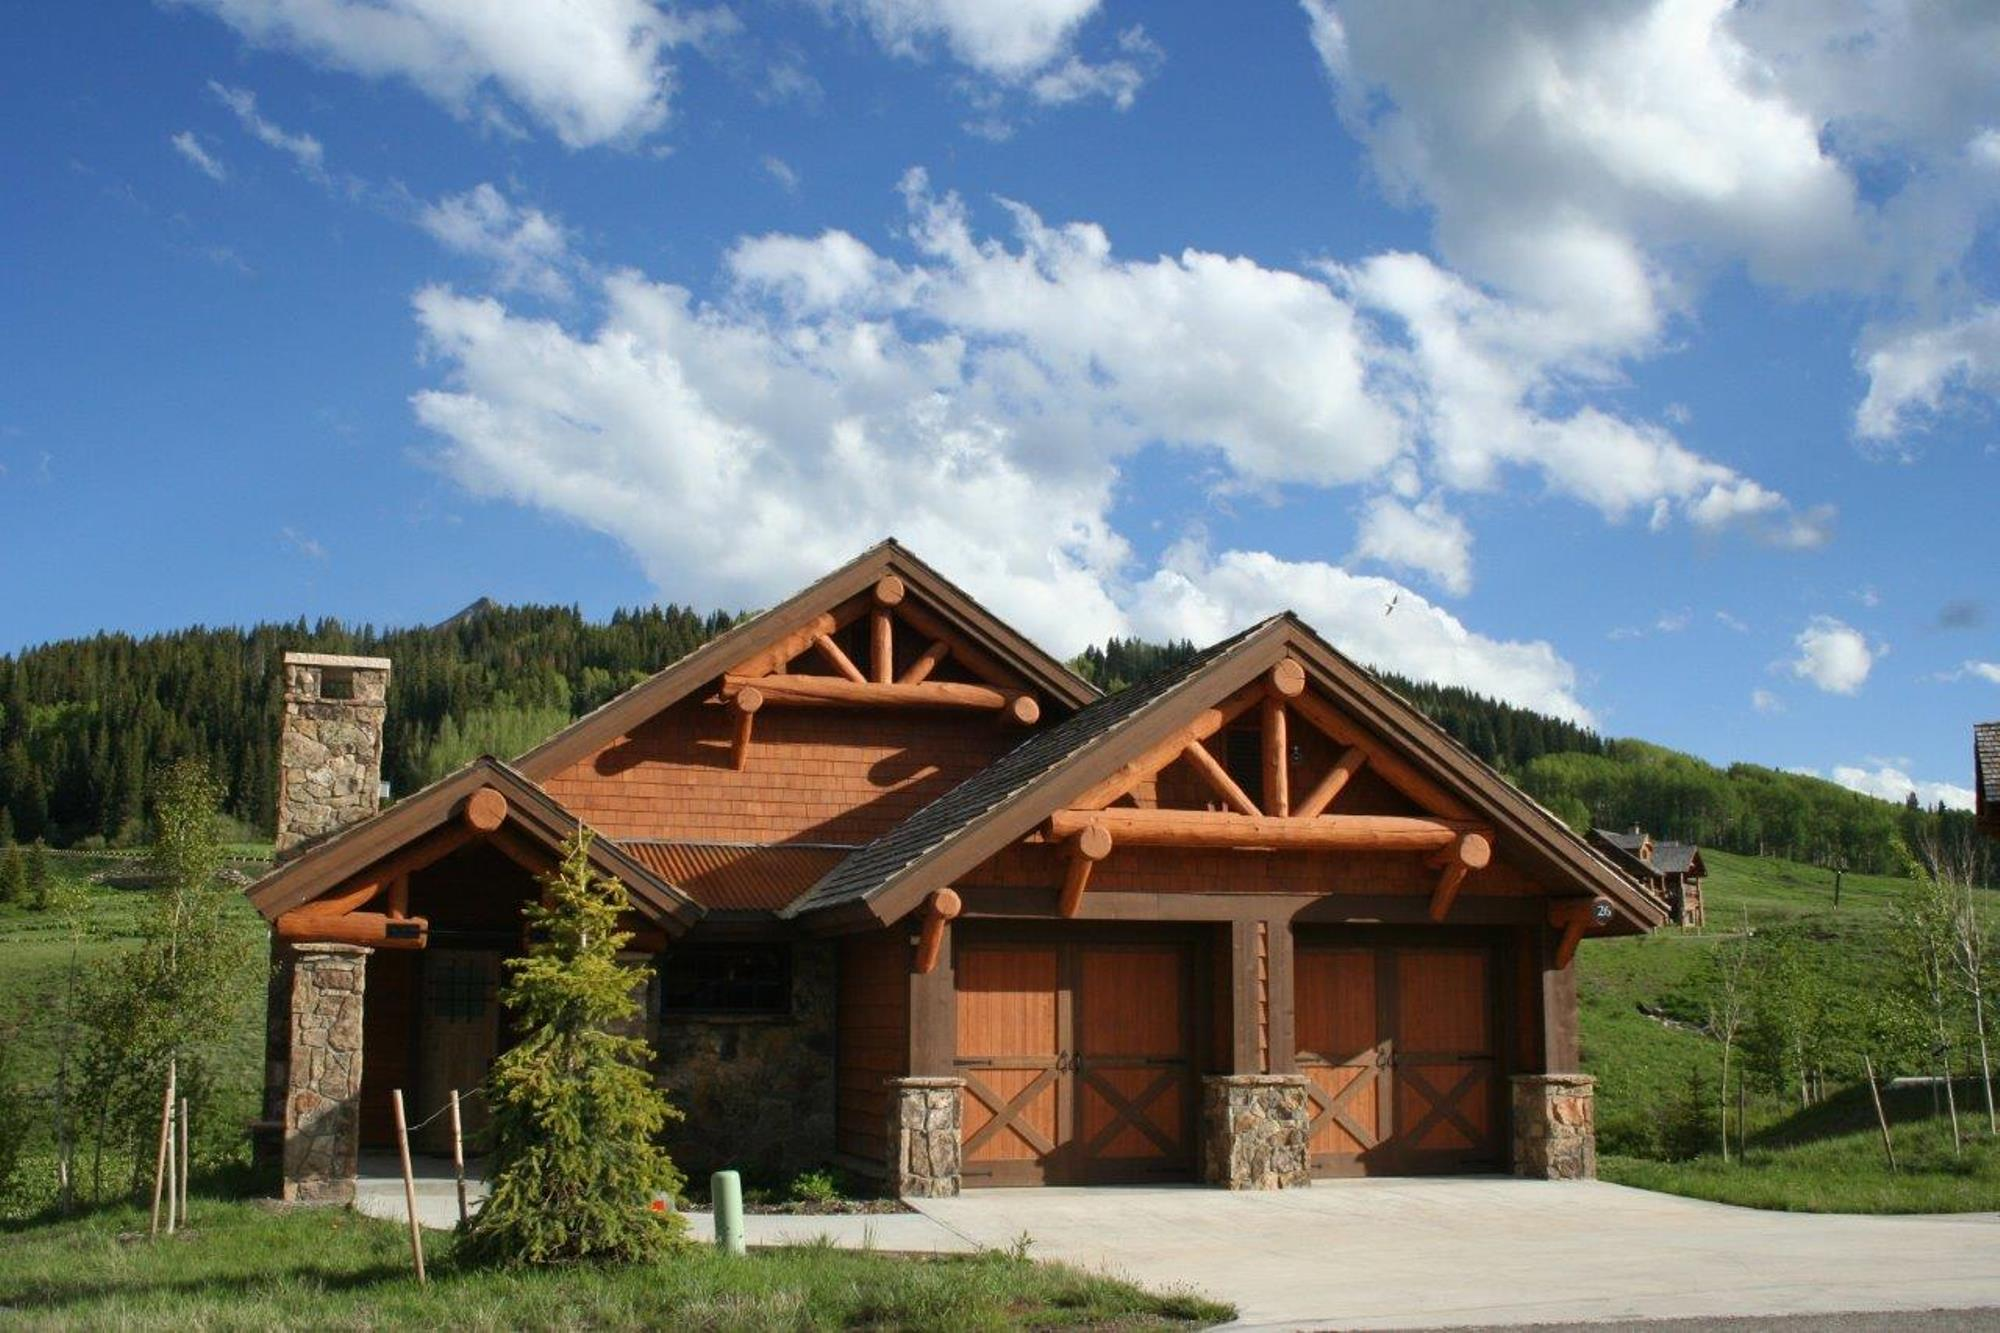 Single Family Home for Sale at Mountain Home Near Ski Resort 26 Appaloosa Road Crested Butte, Colorado, 81225 United States